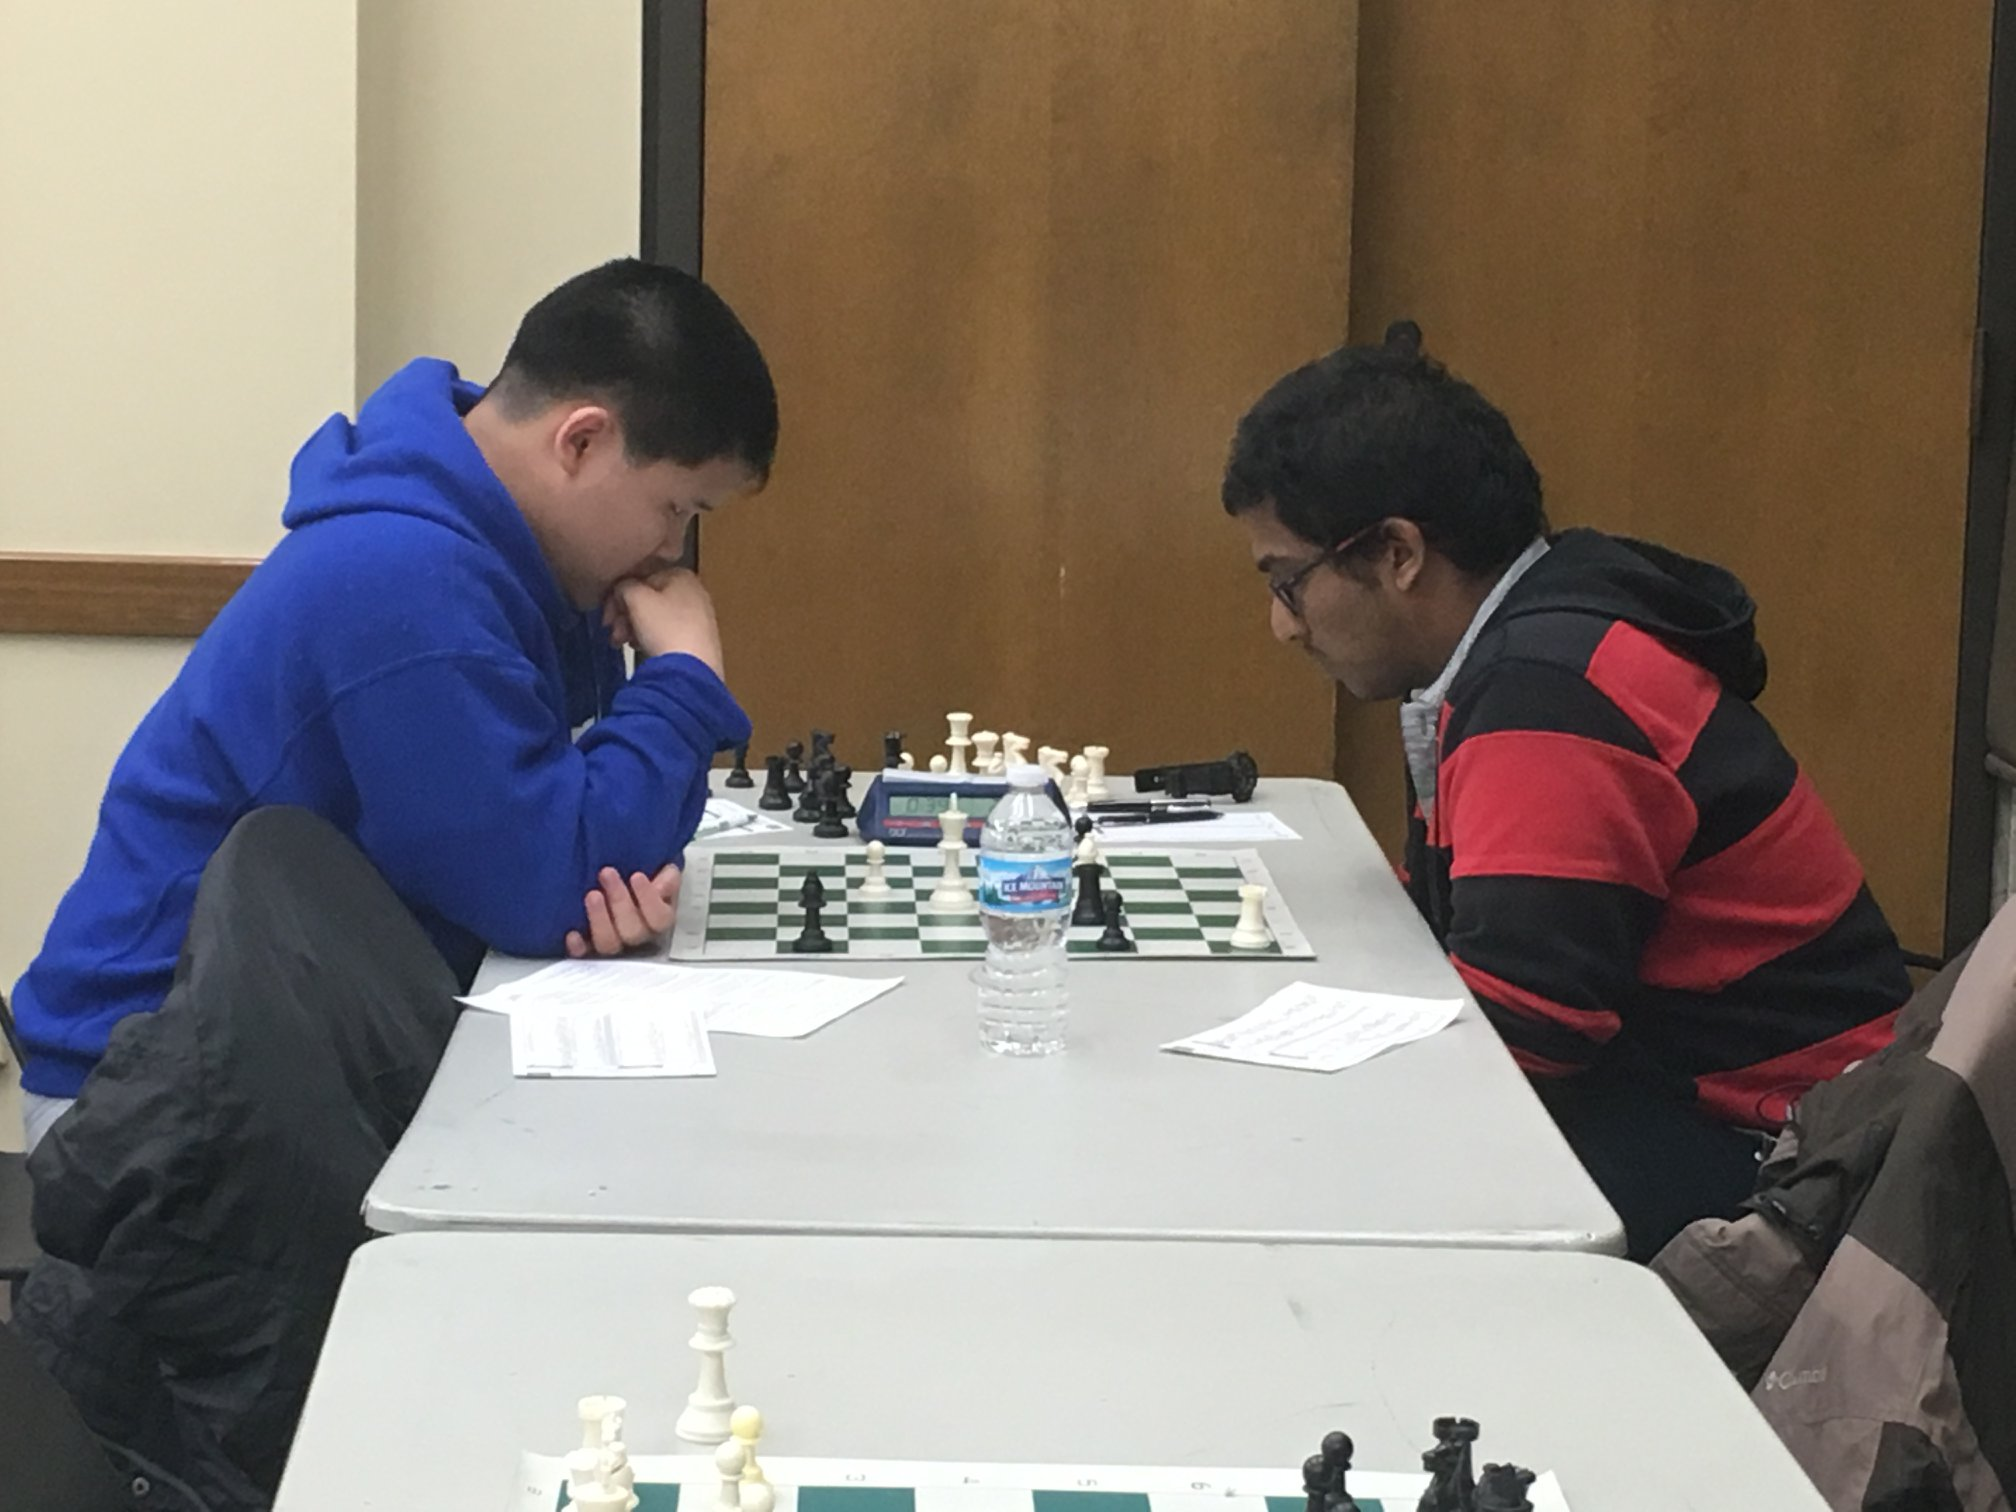 14-year-old GM Awonder Liang (left) defeated GM Priyadharshan Kannappan in the final round.  (Photo: Hiro Higuchi)